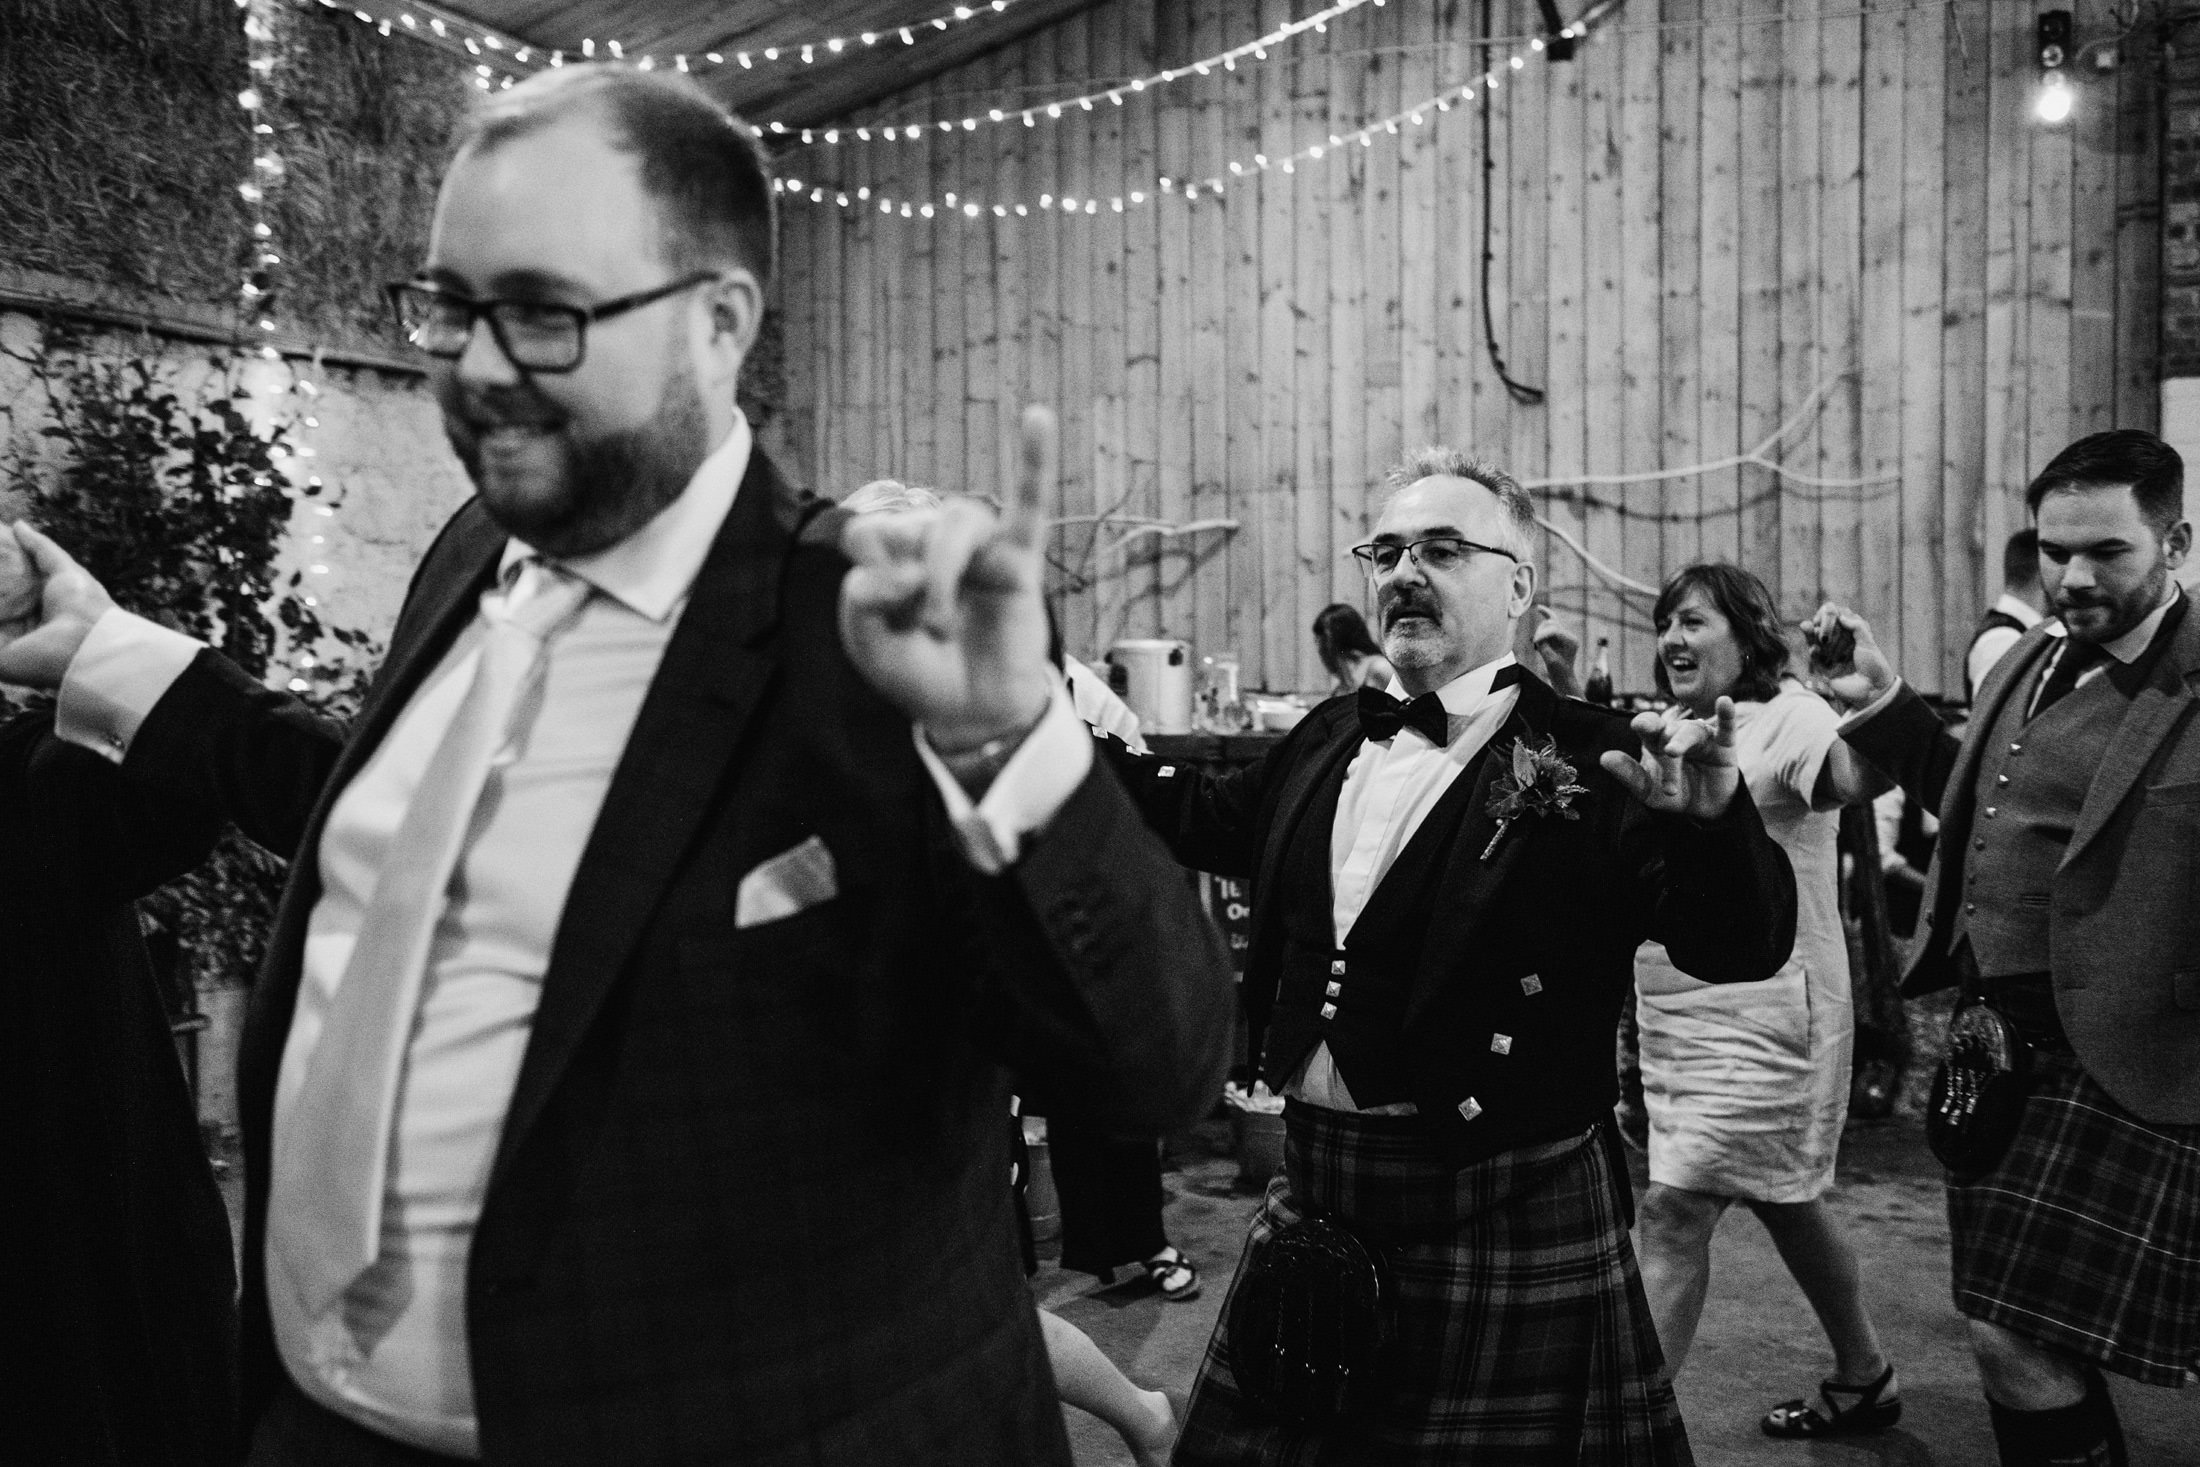 ceilidh dancing in black and white